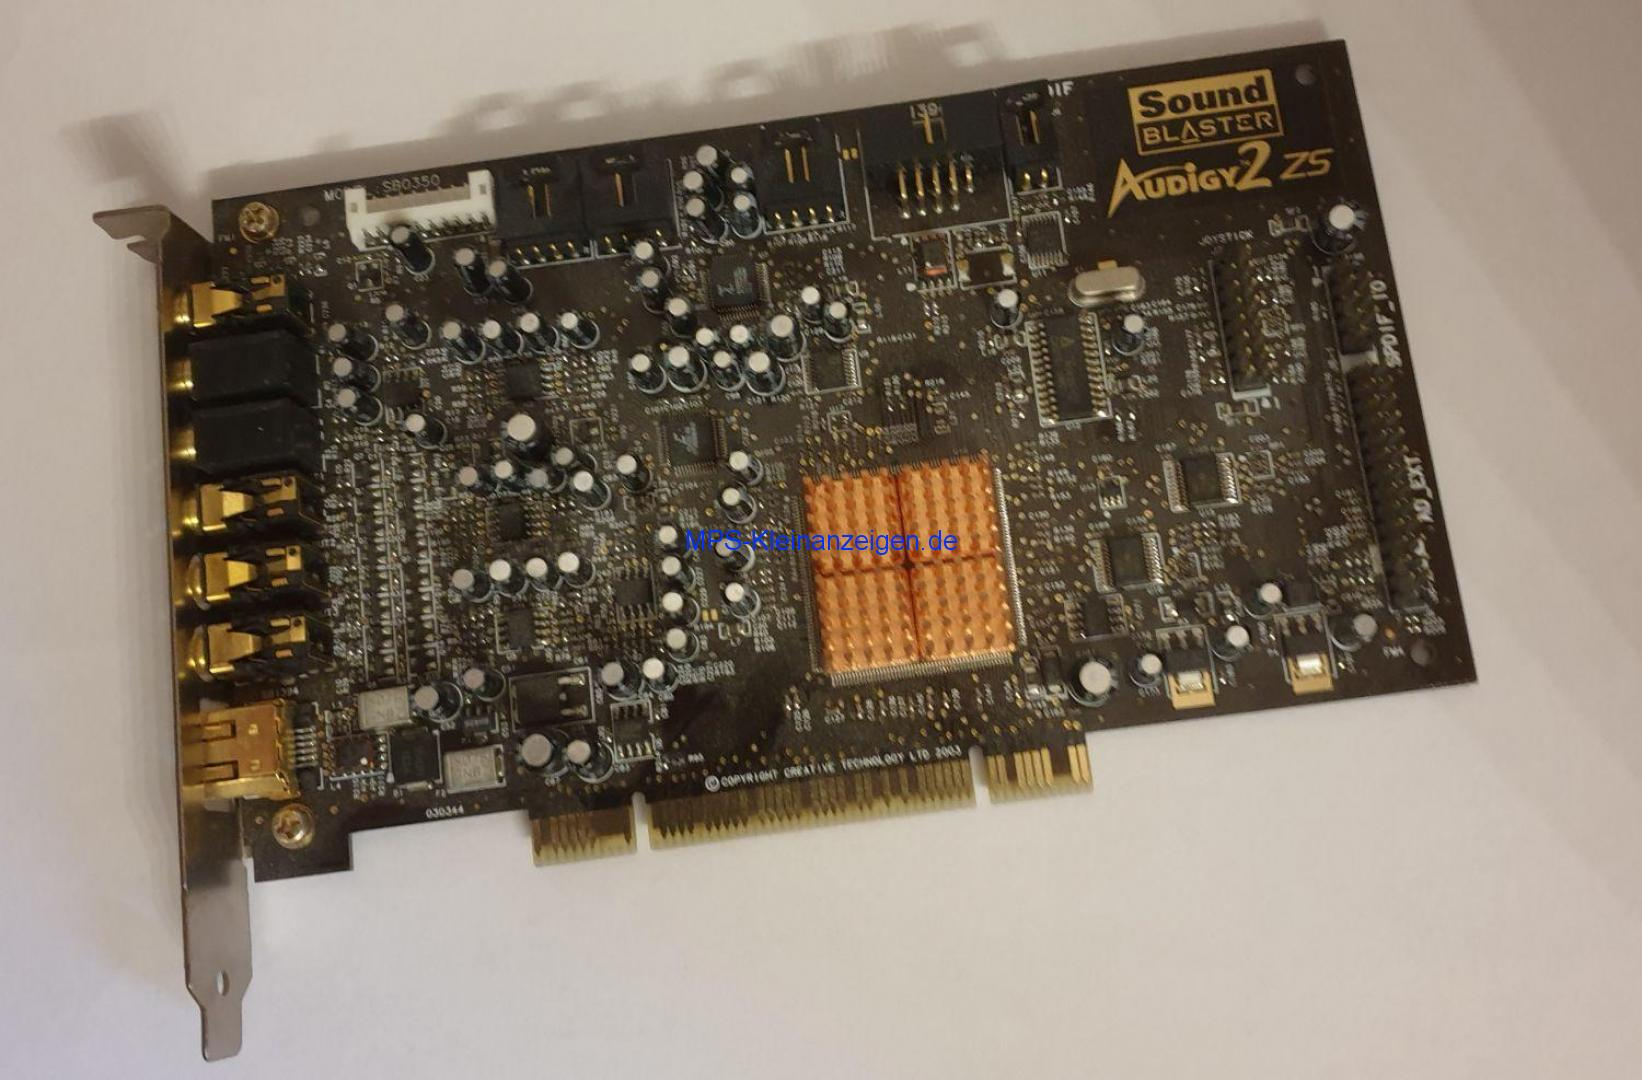 SoundBlaster Audigy 2 ZS